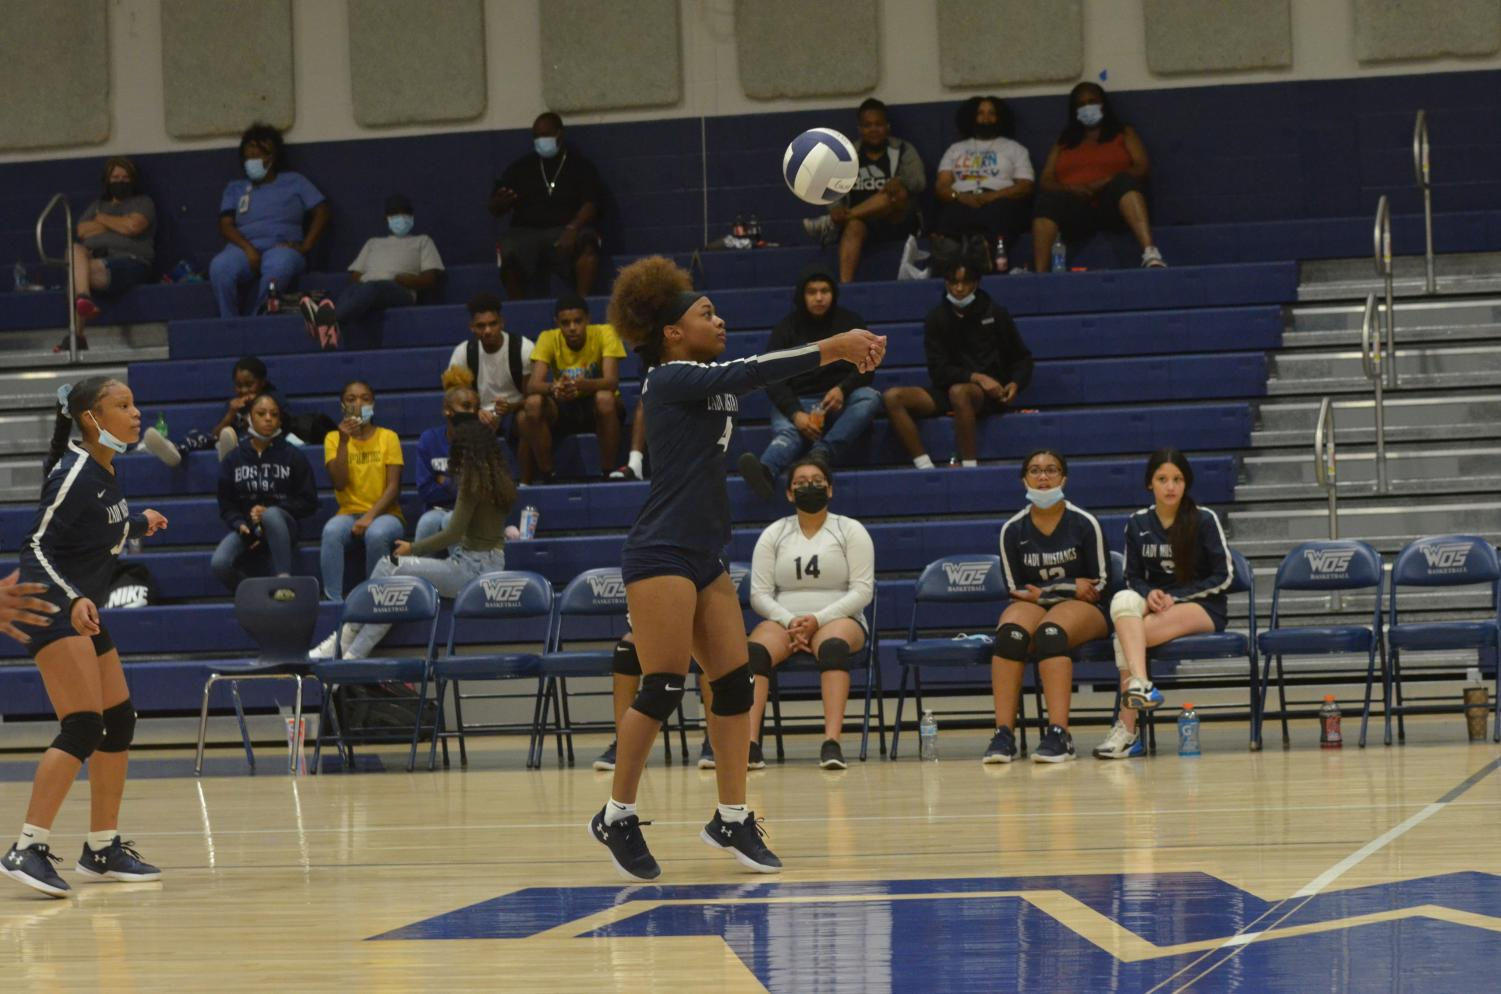 Volleyball+Team+Keeps+the+Crowd+on+The+Edge+of+Their+Seats